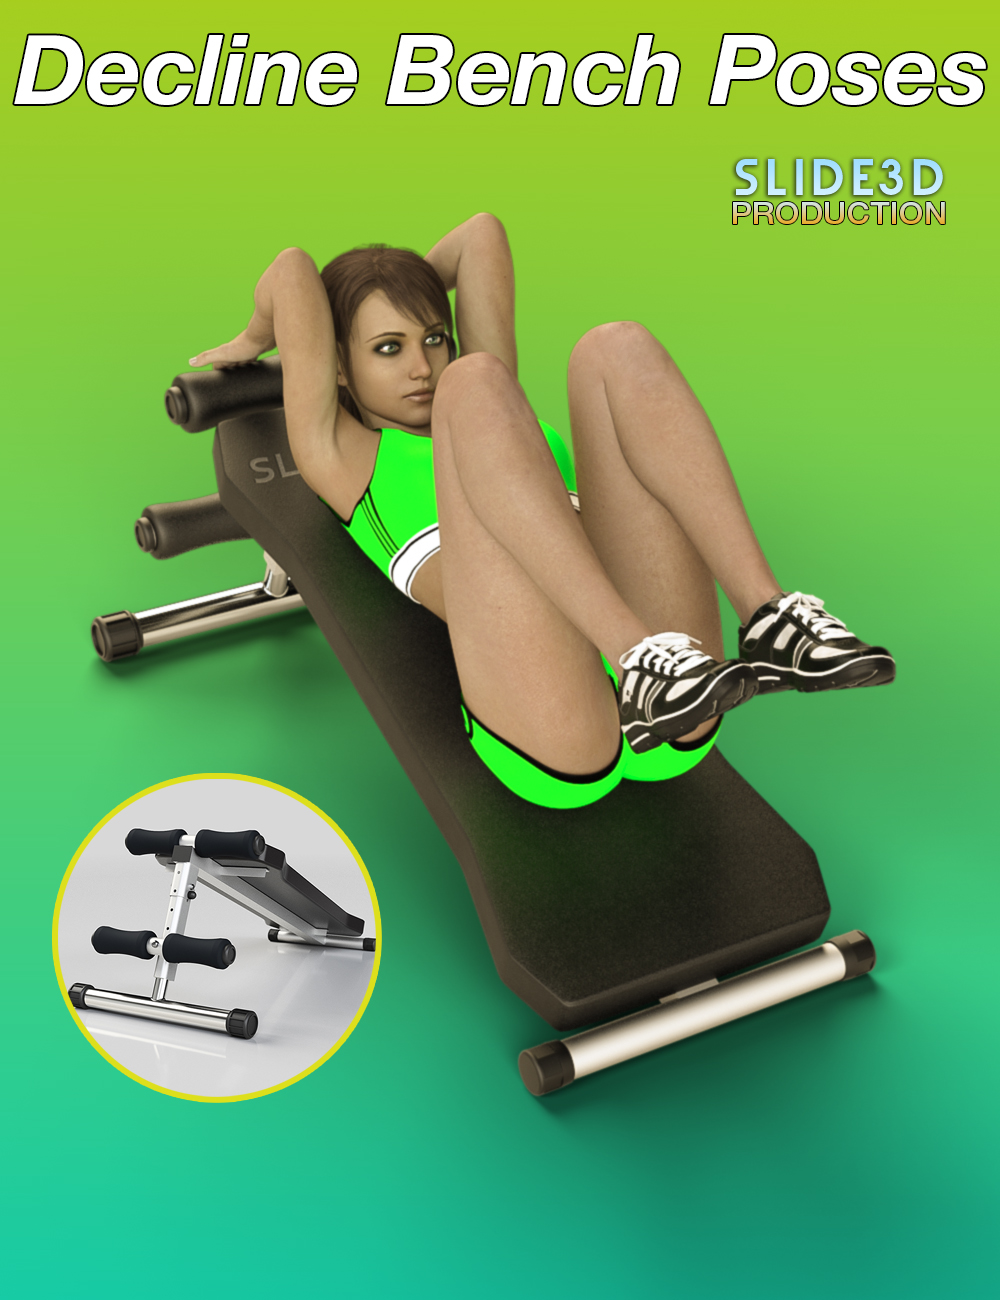 Slide3D Sport Poses with Decline Bench for Genesis 3 Female(s) by: Slide3D, 3D Models by Daz 3D